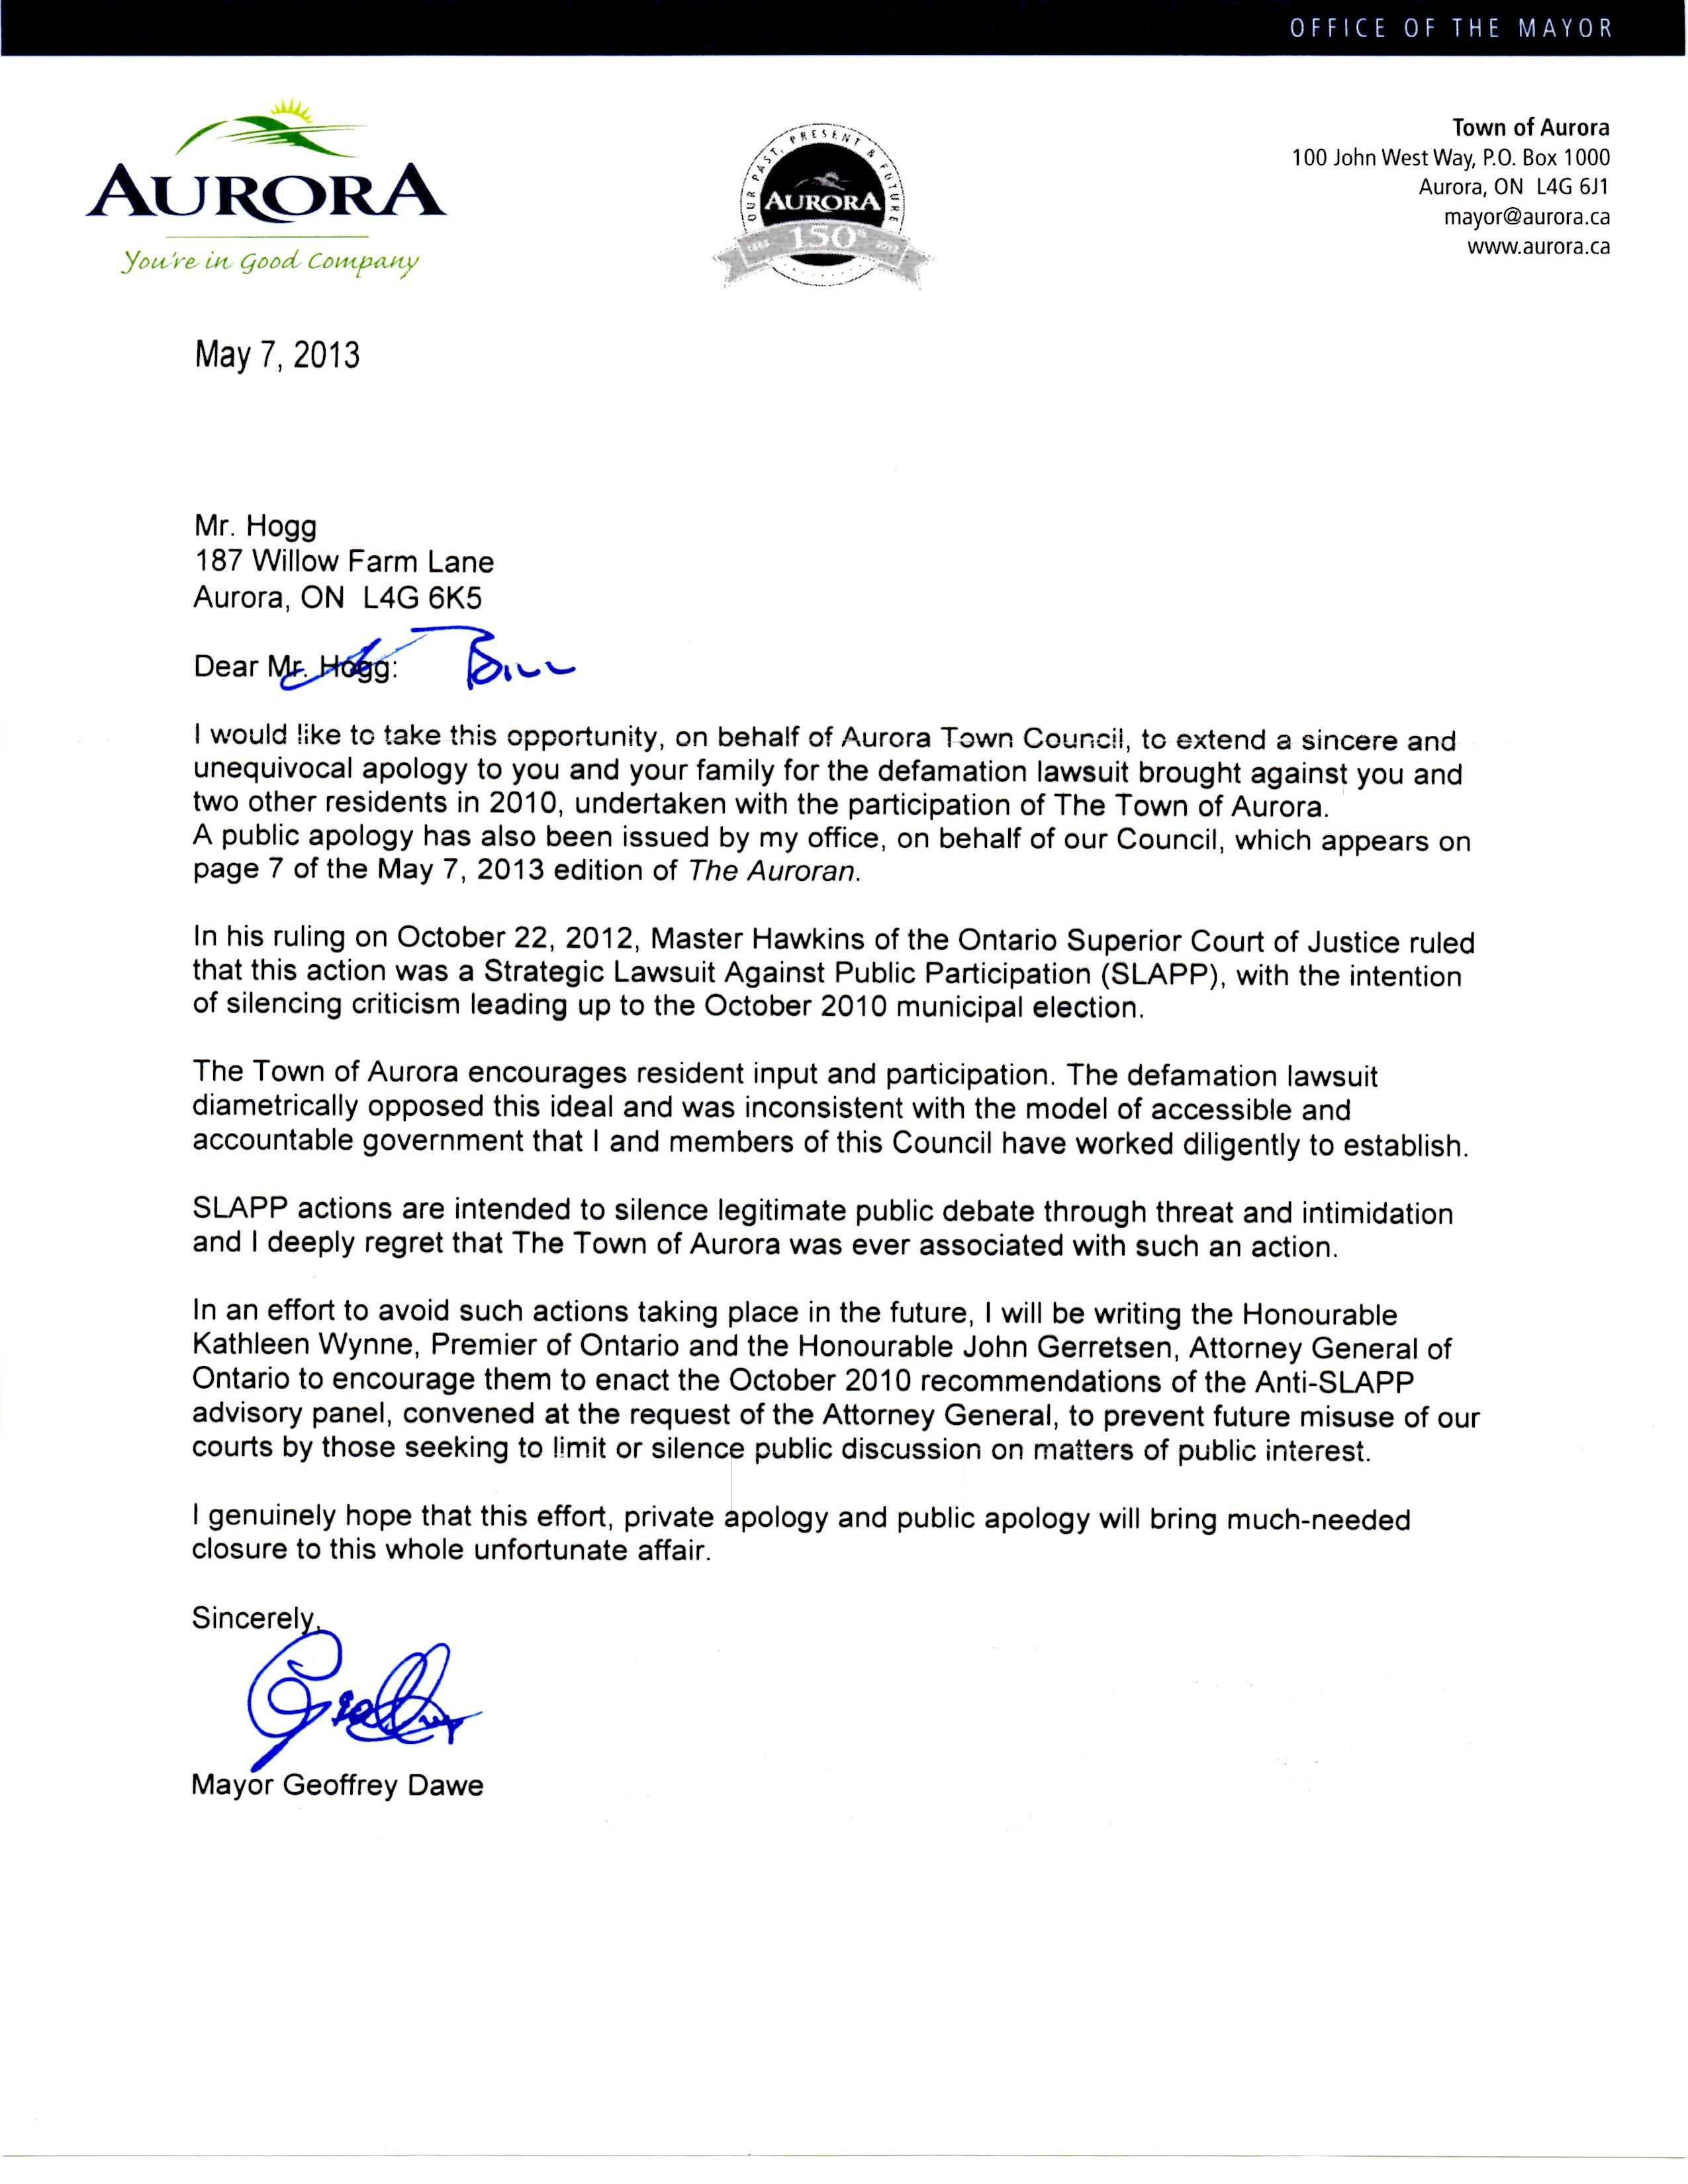 Aurora Citizen Town Apology Letterletter Of Apology Business